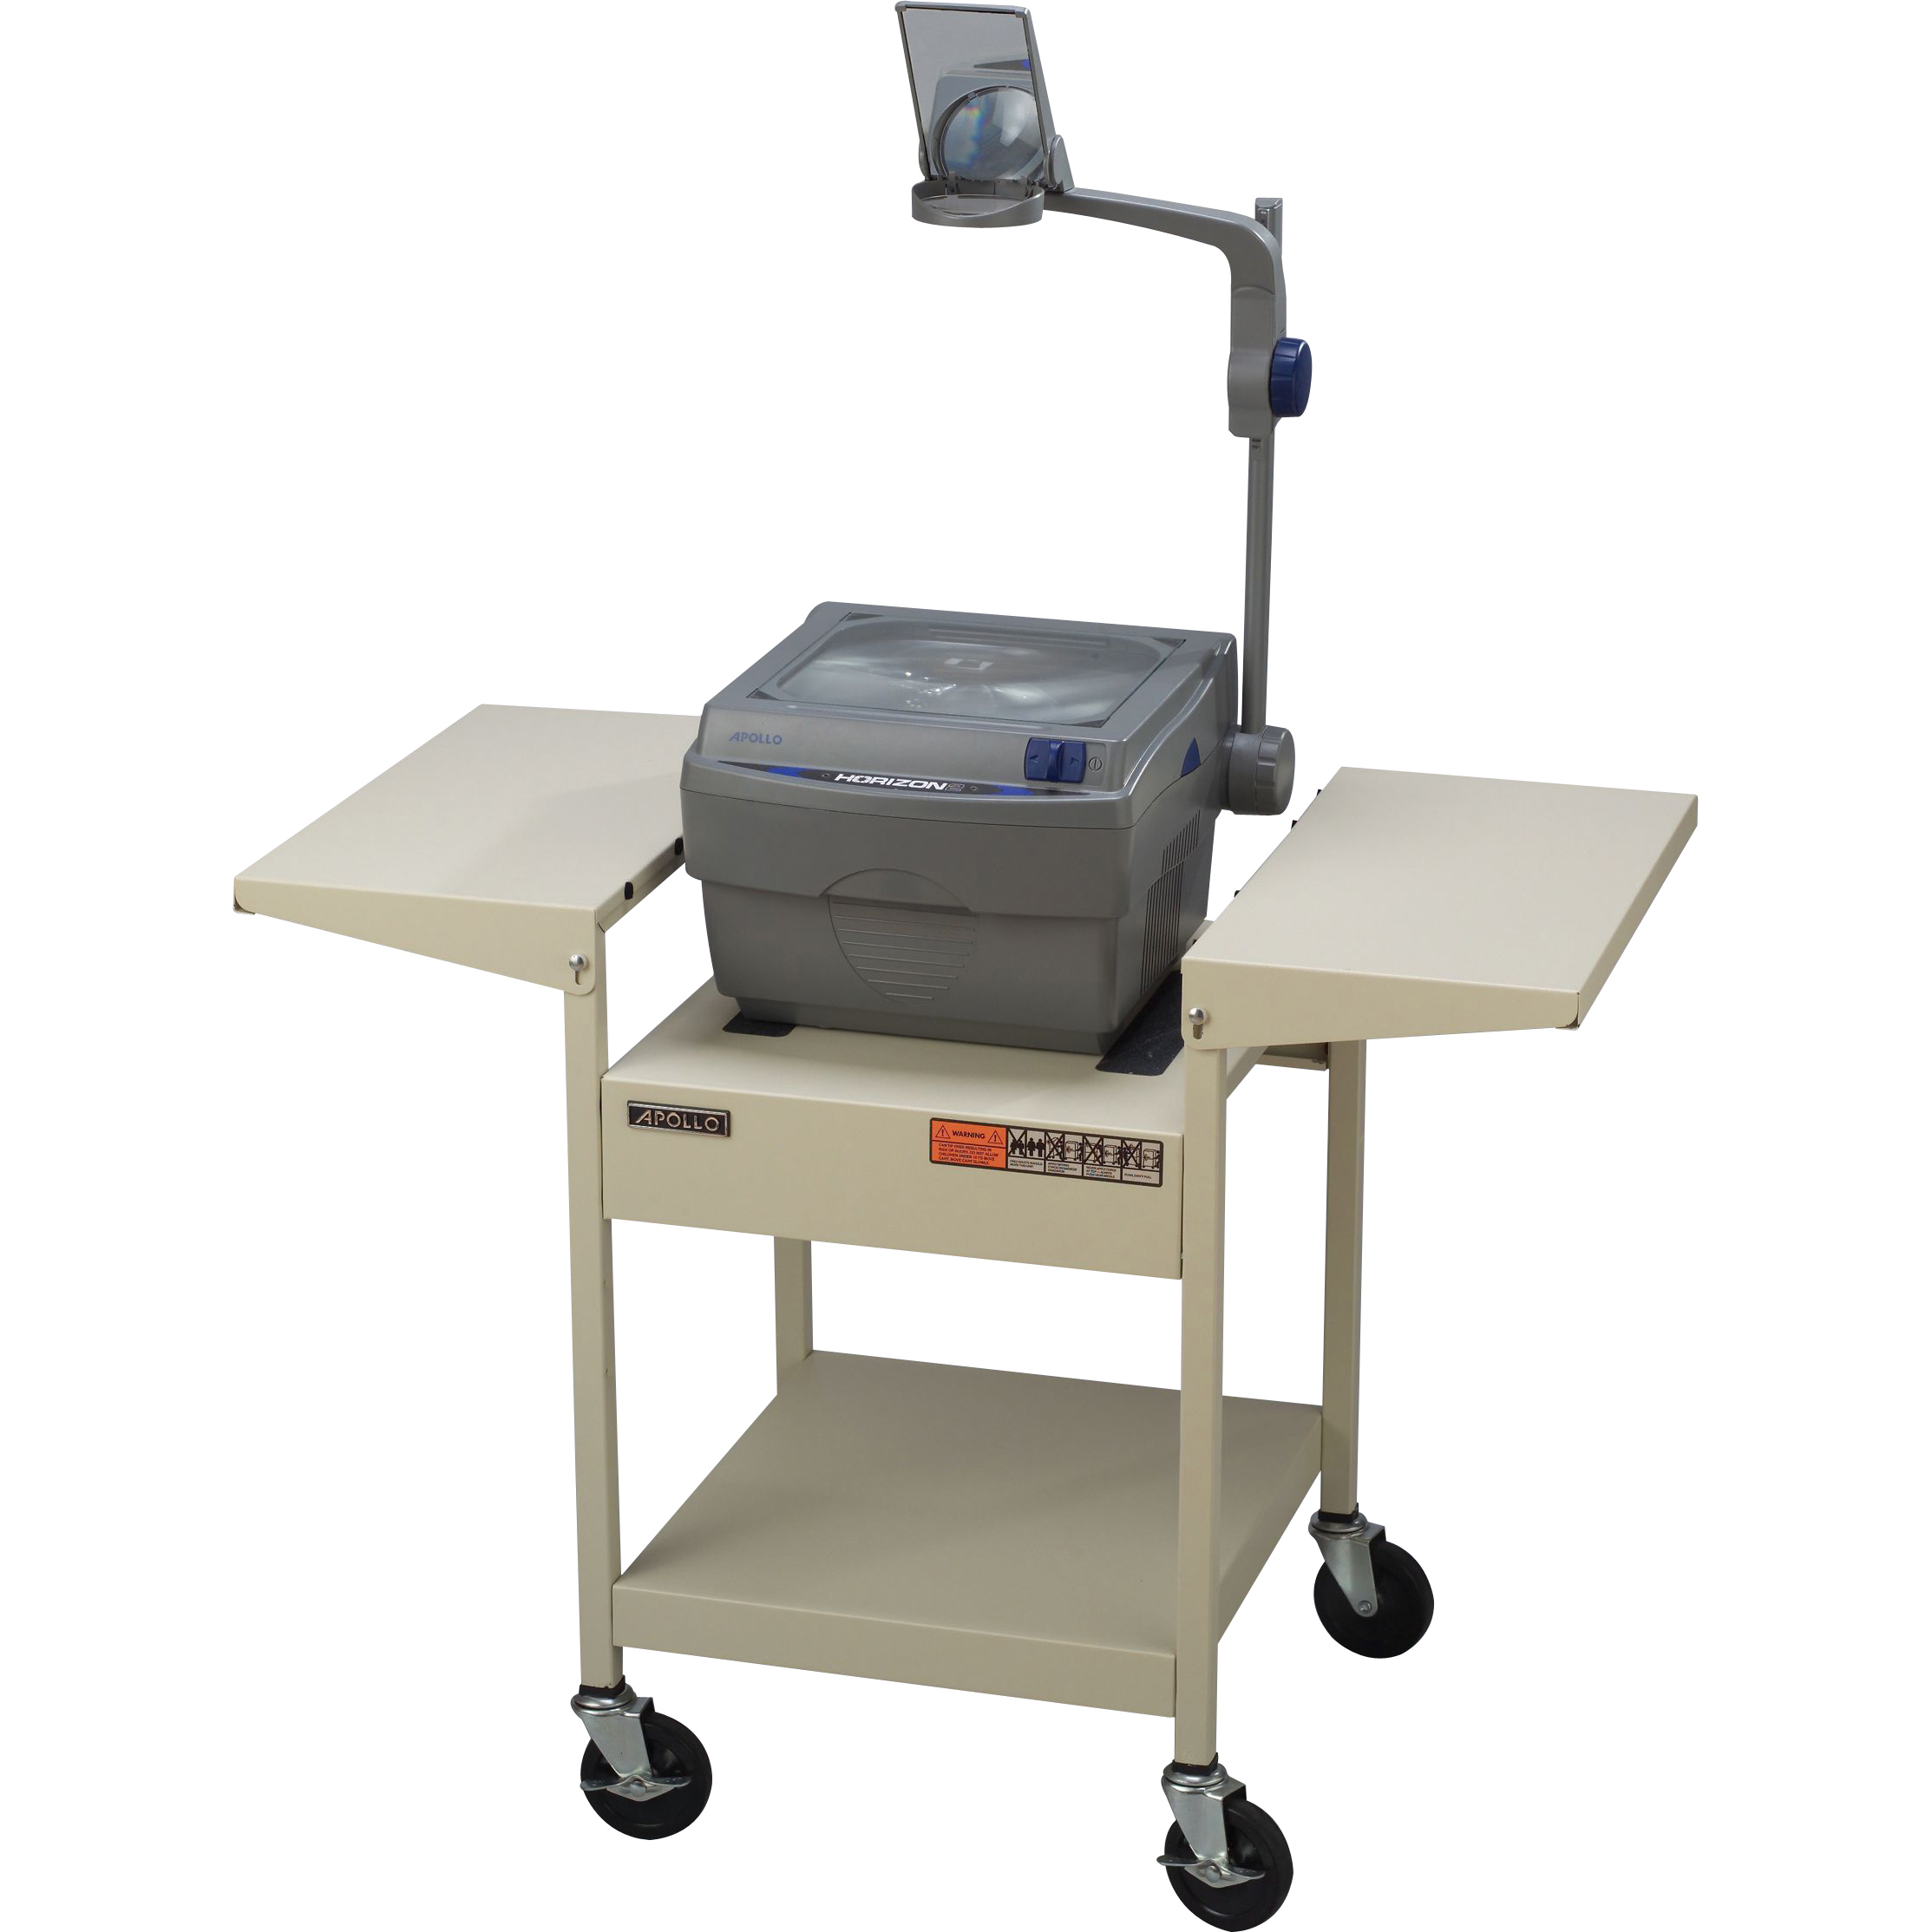 Horizon 2 overhead projector ld products for Overhead project